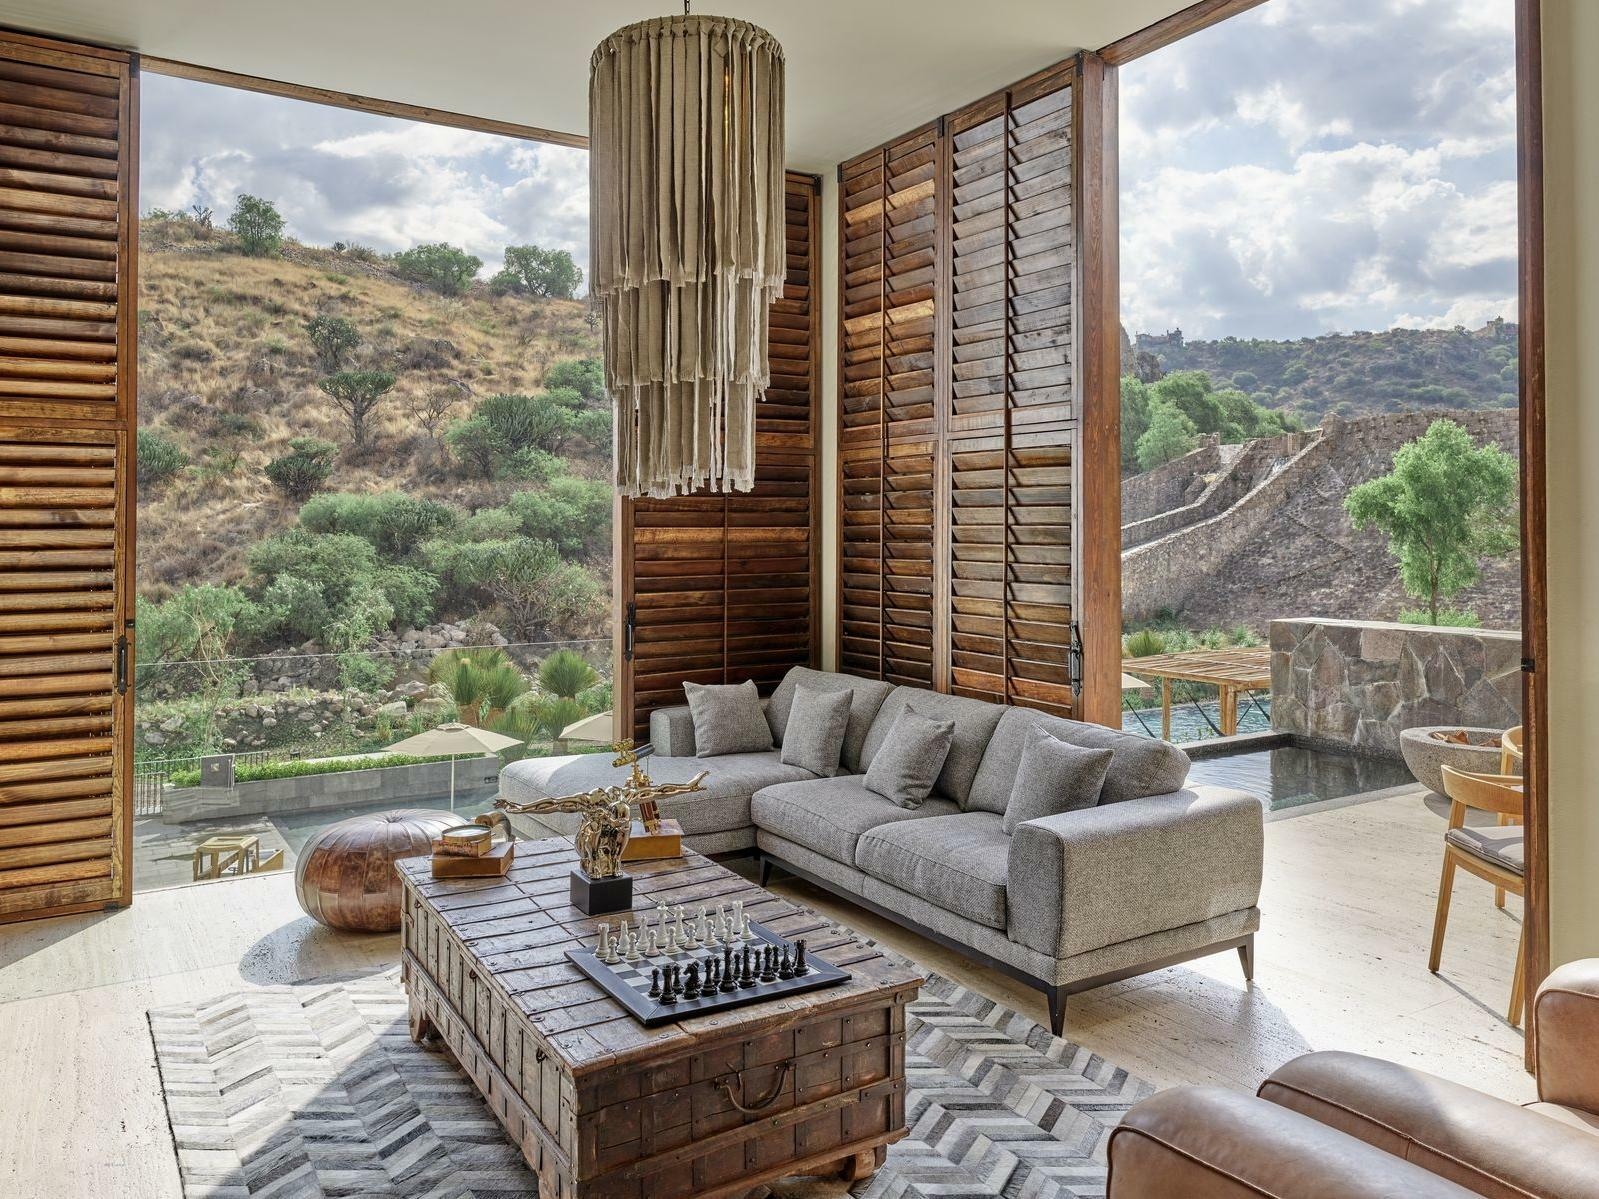 Suite with view of mountains